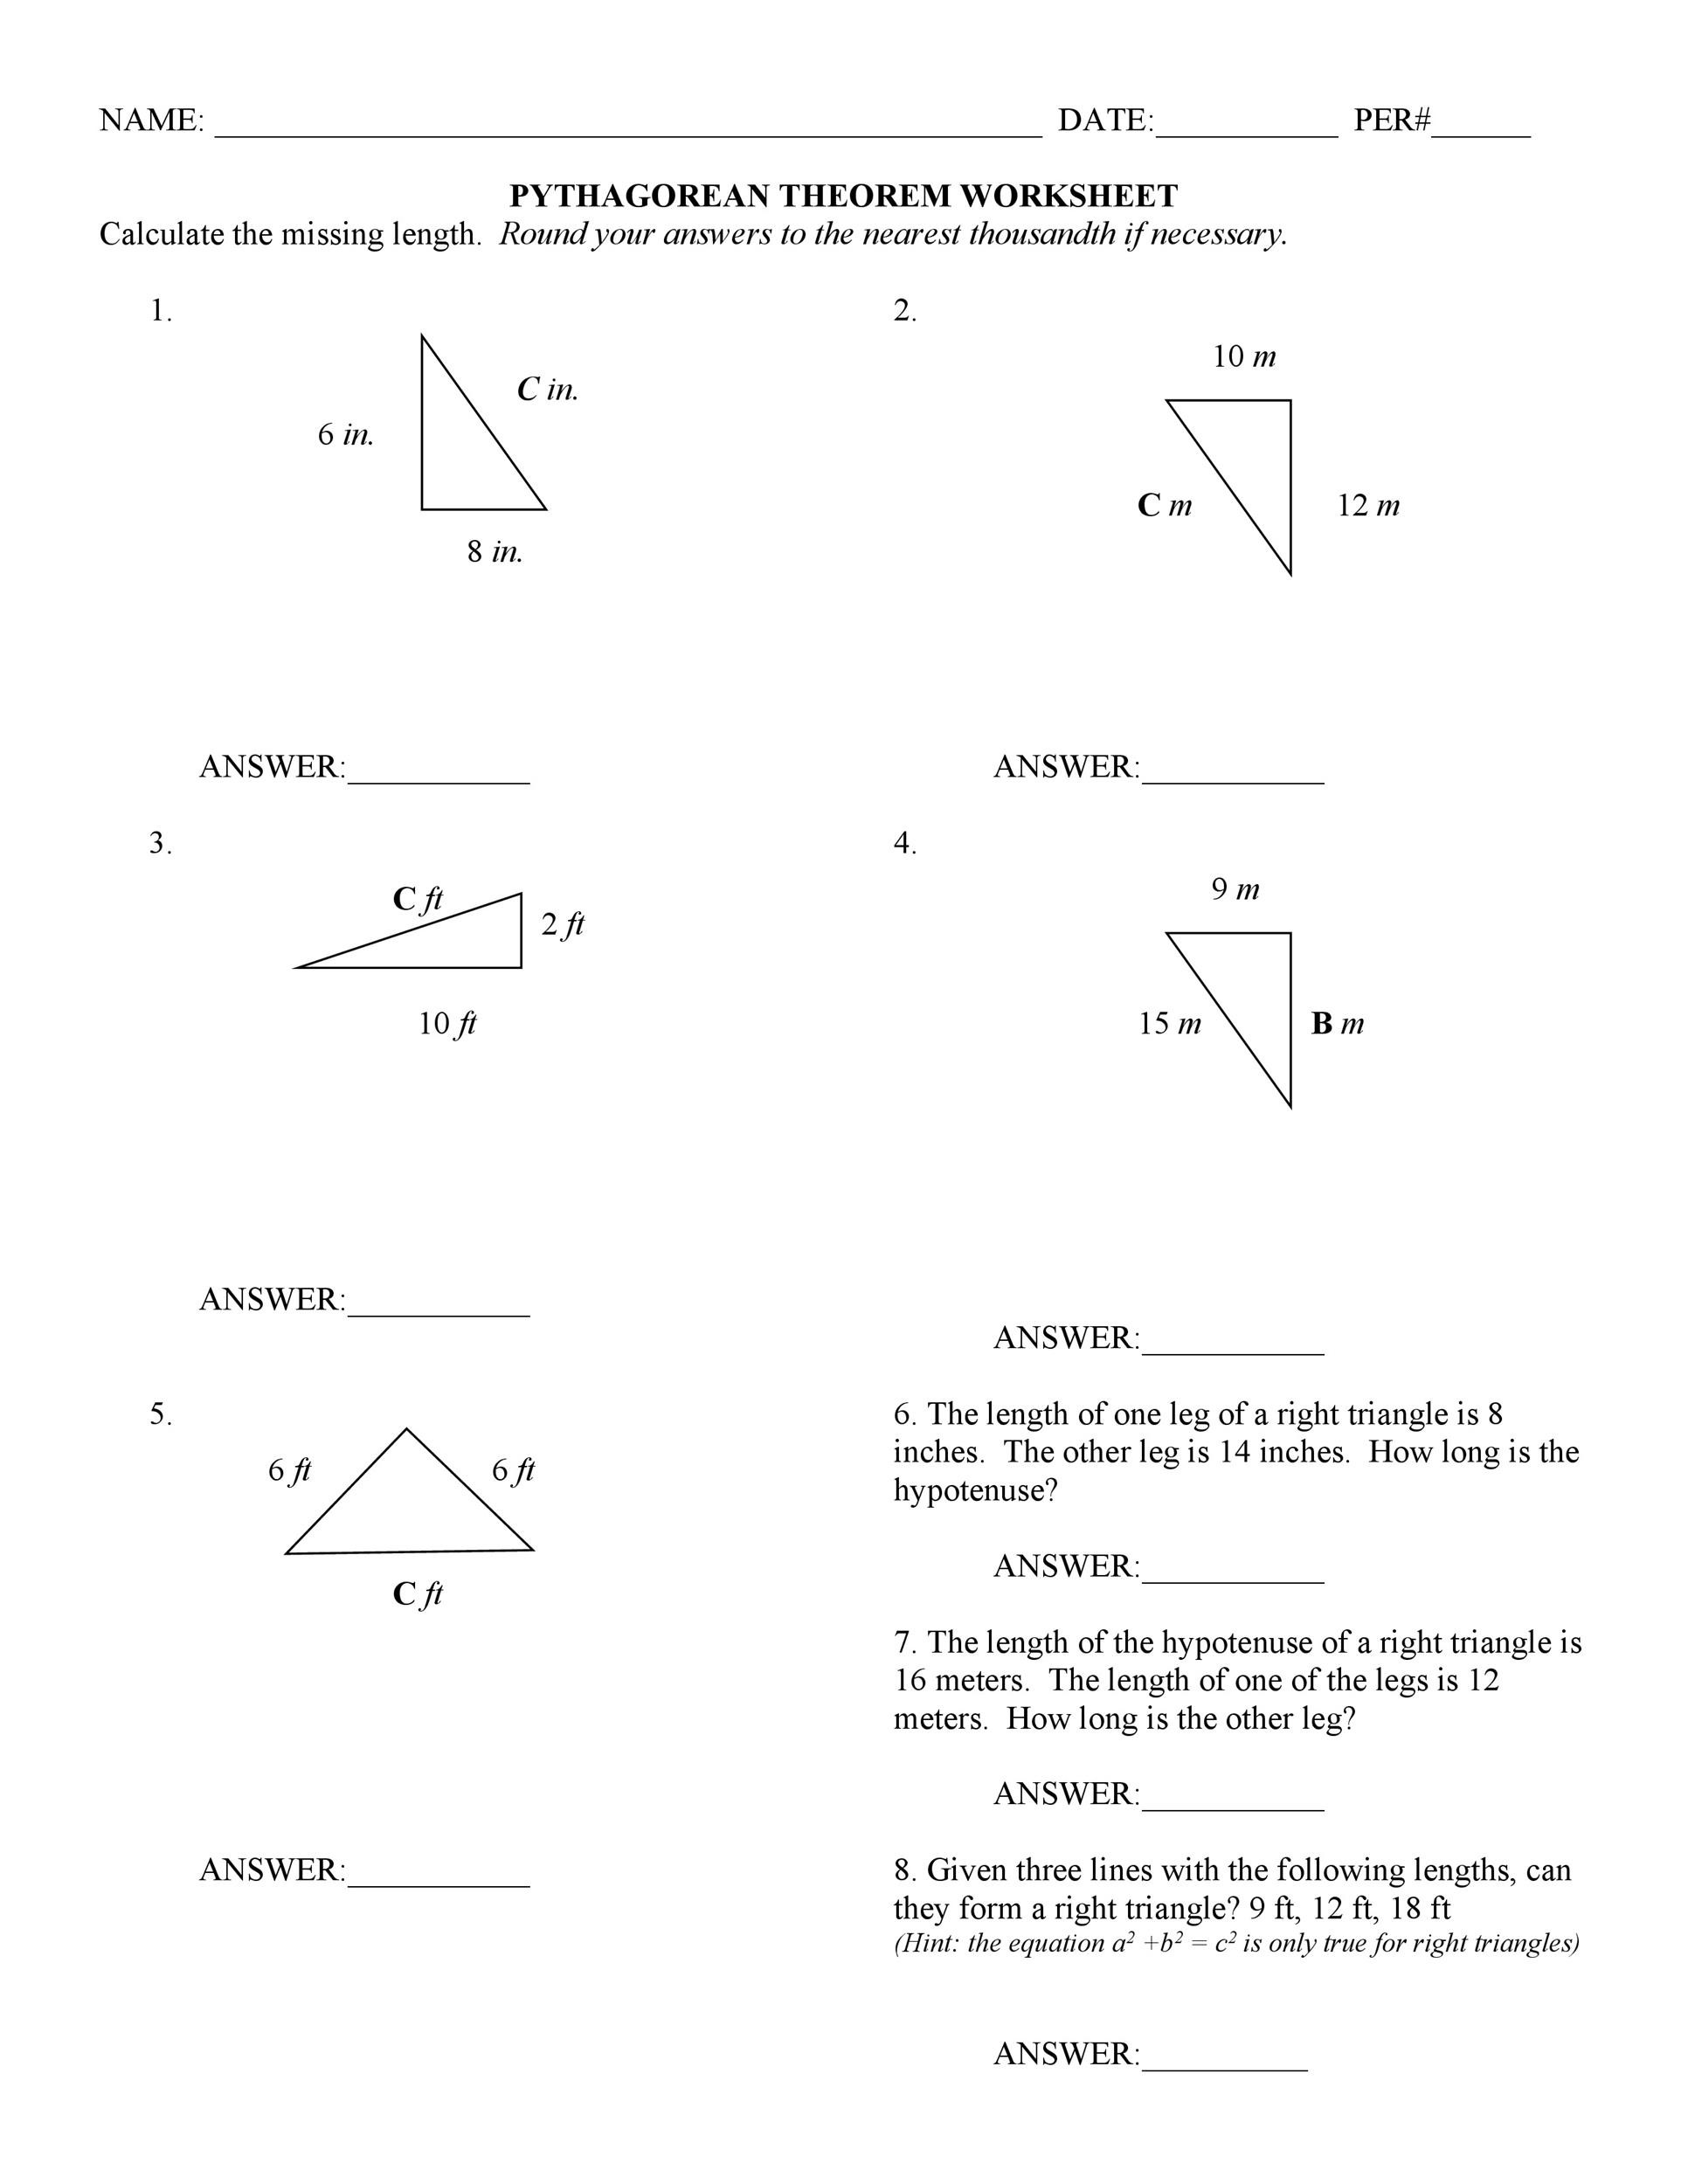 30 Pythagorean Theorem Word Problems Worksheet